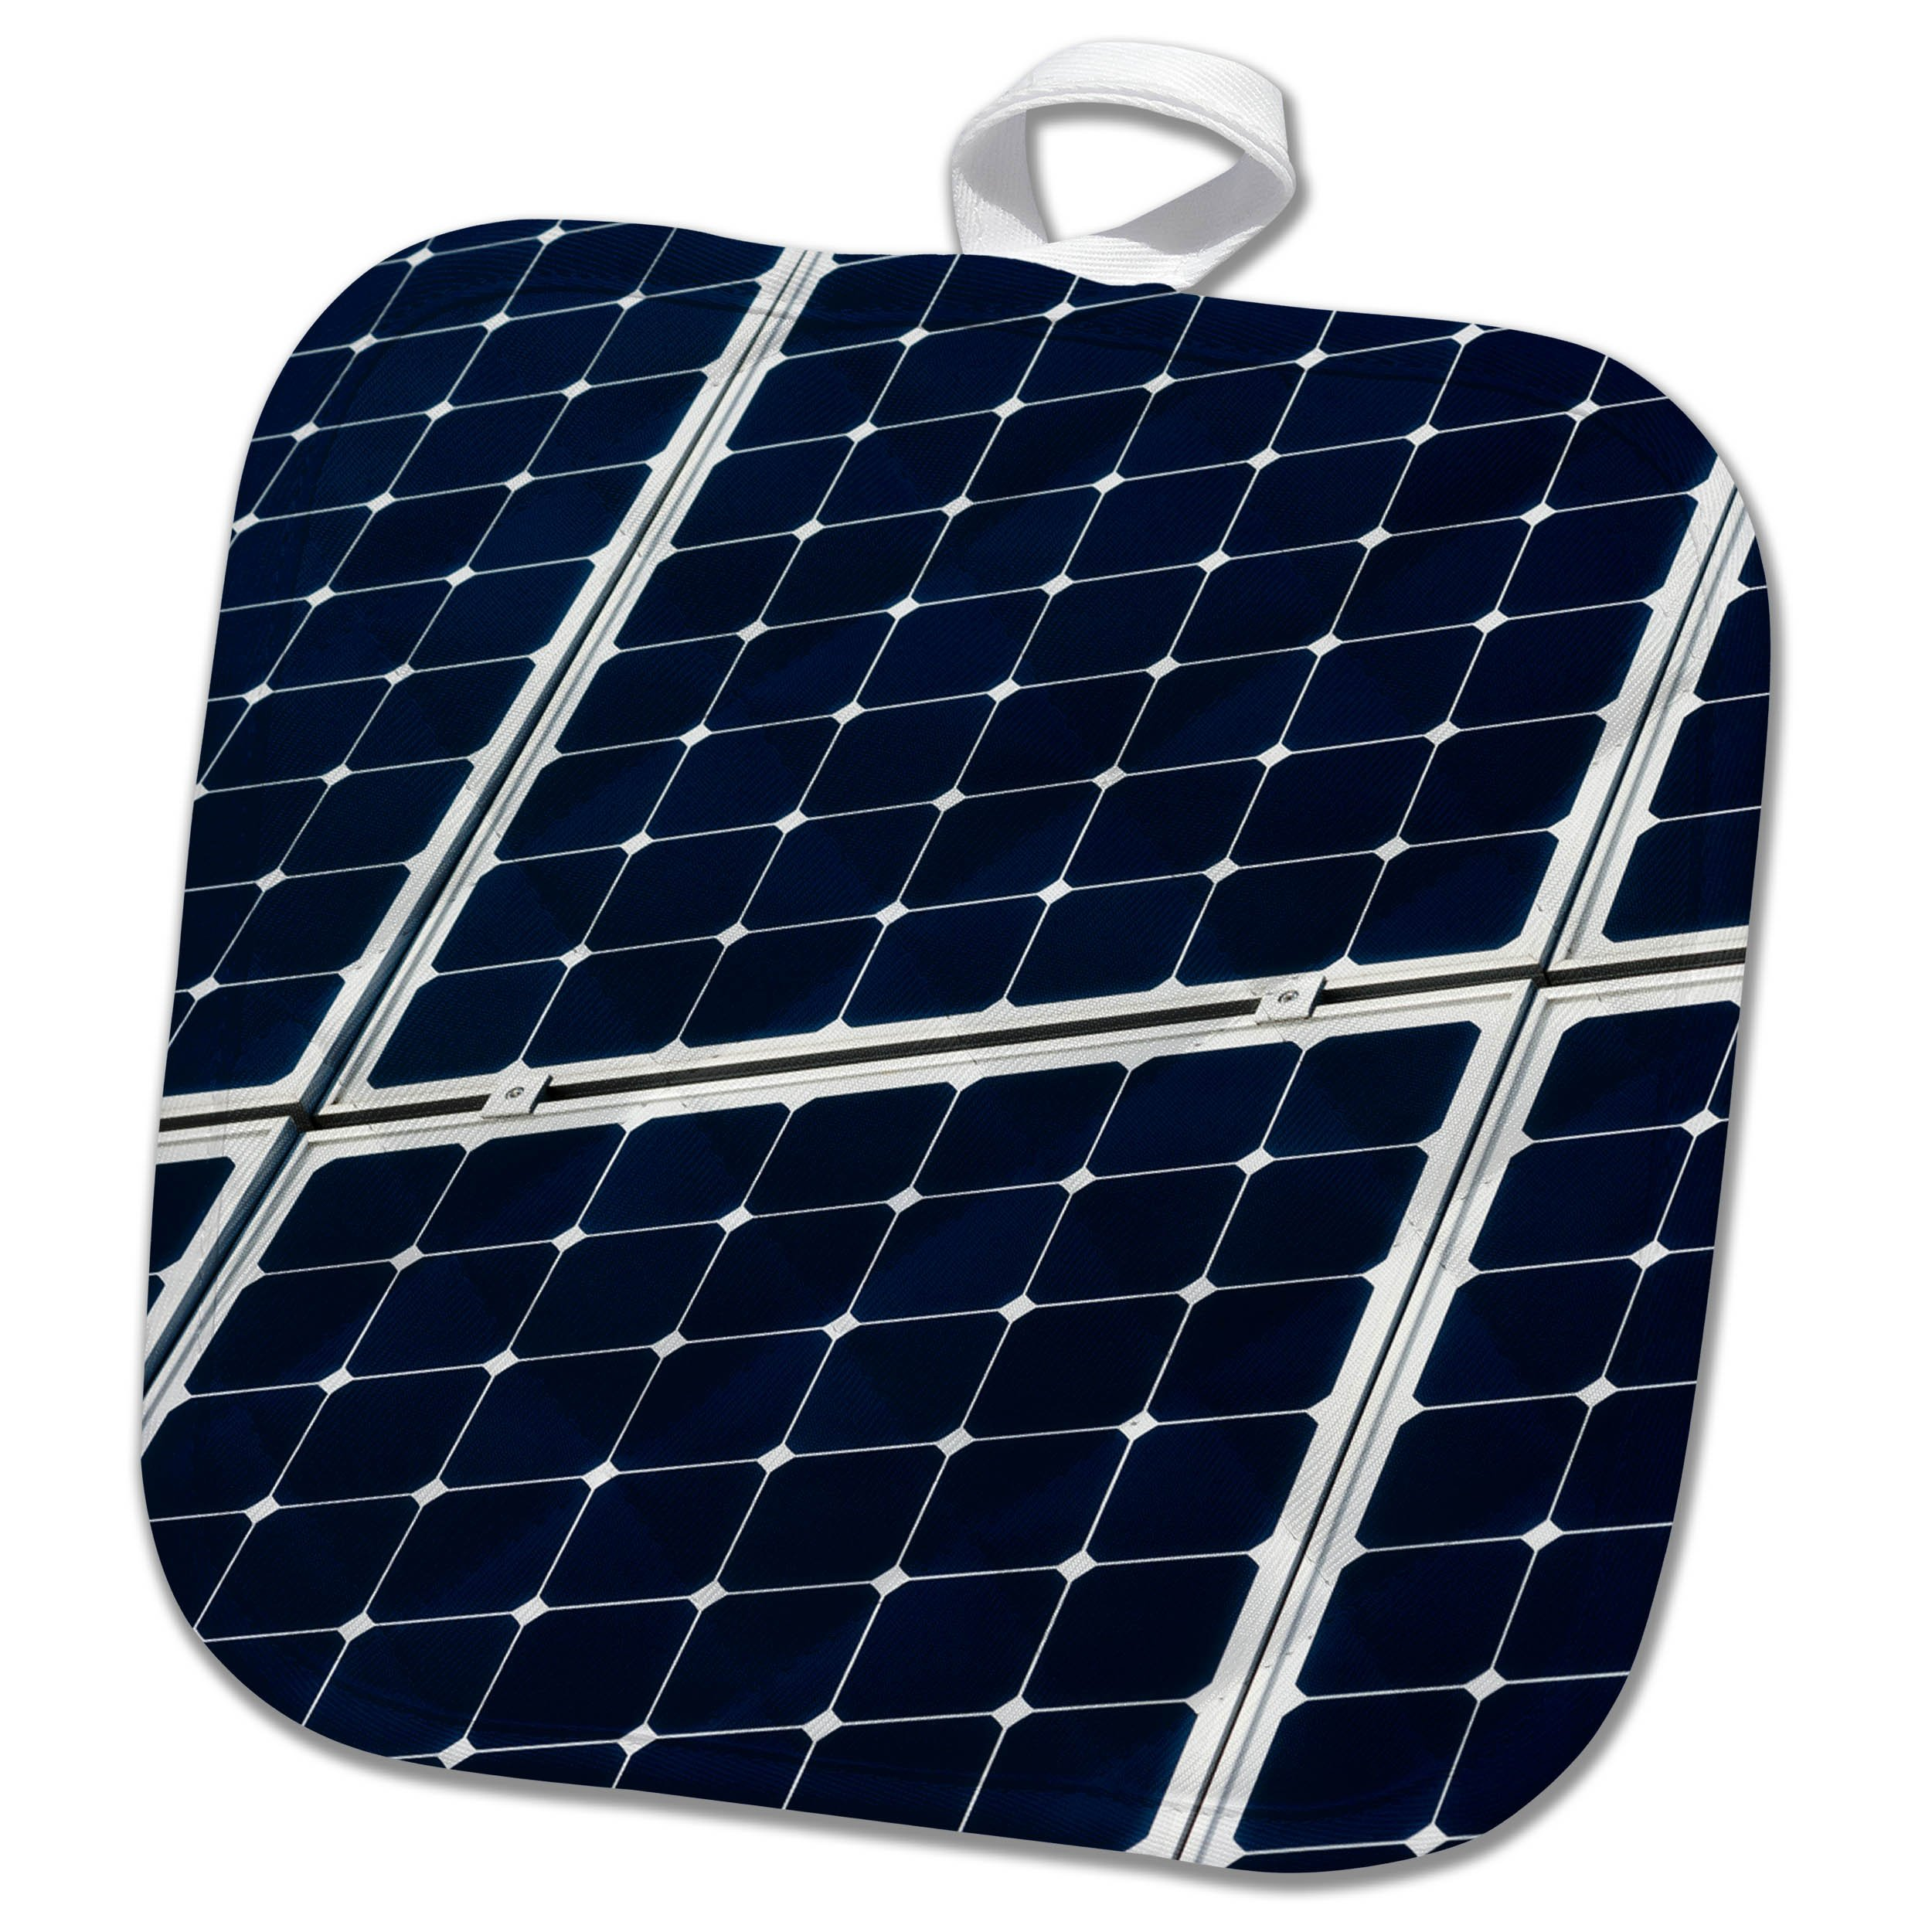 3dRose Alexis Photography - Objects - Dark blue solar power panel, white frame, diagonal view - 8x8 Potholder (phl_271346_1)